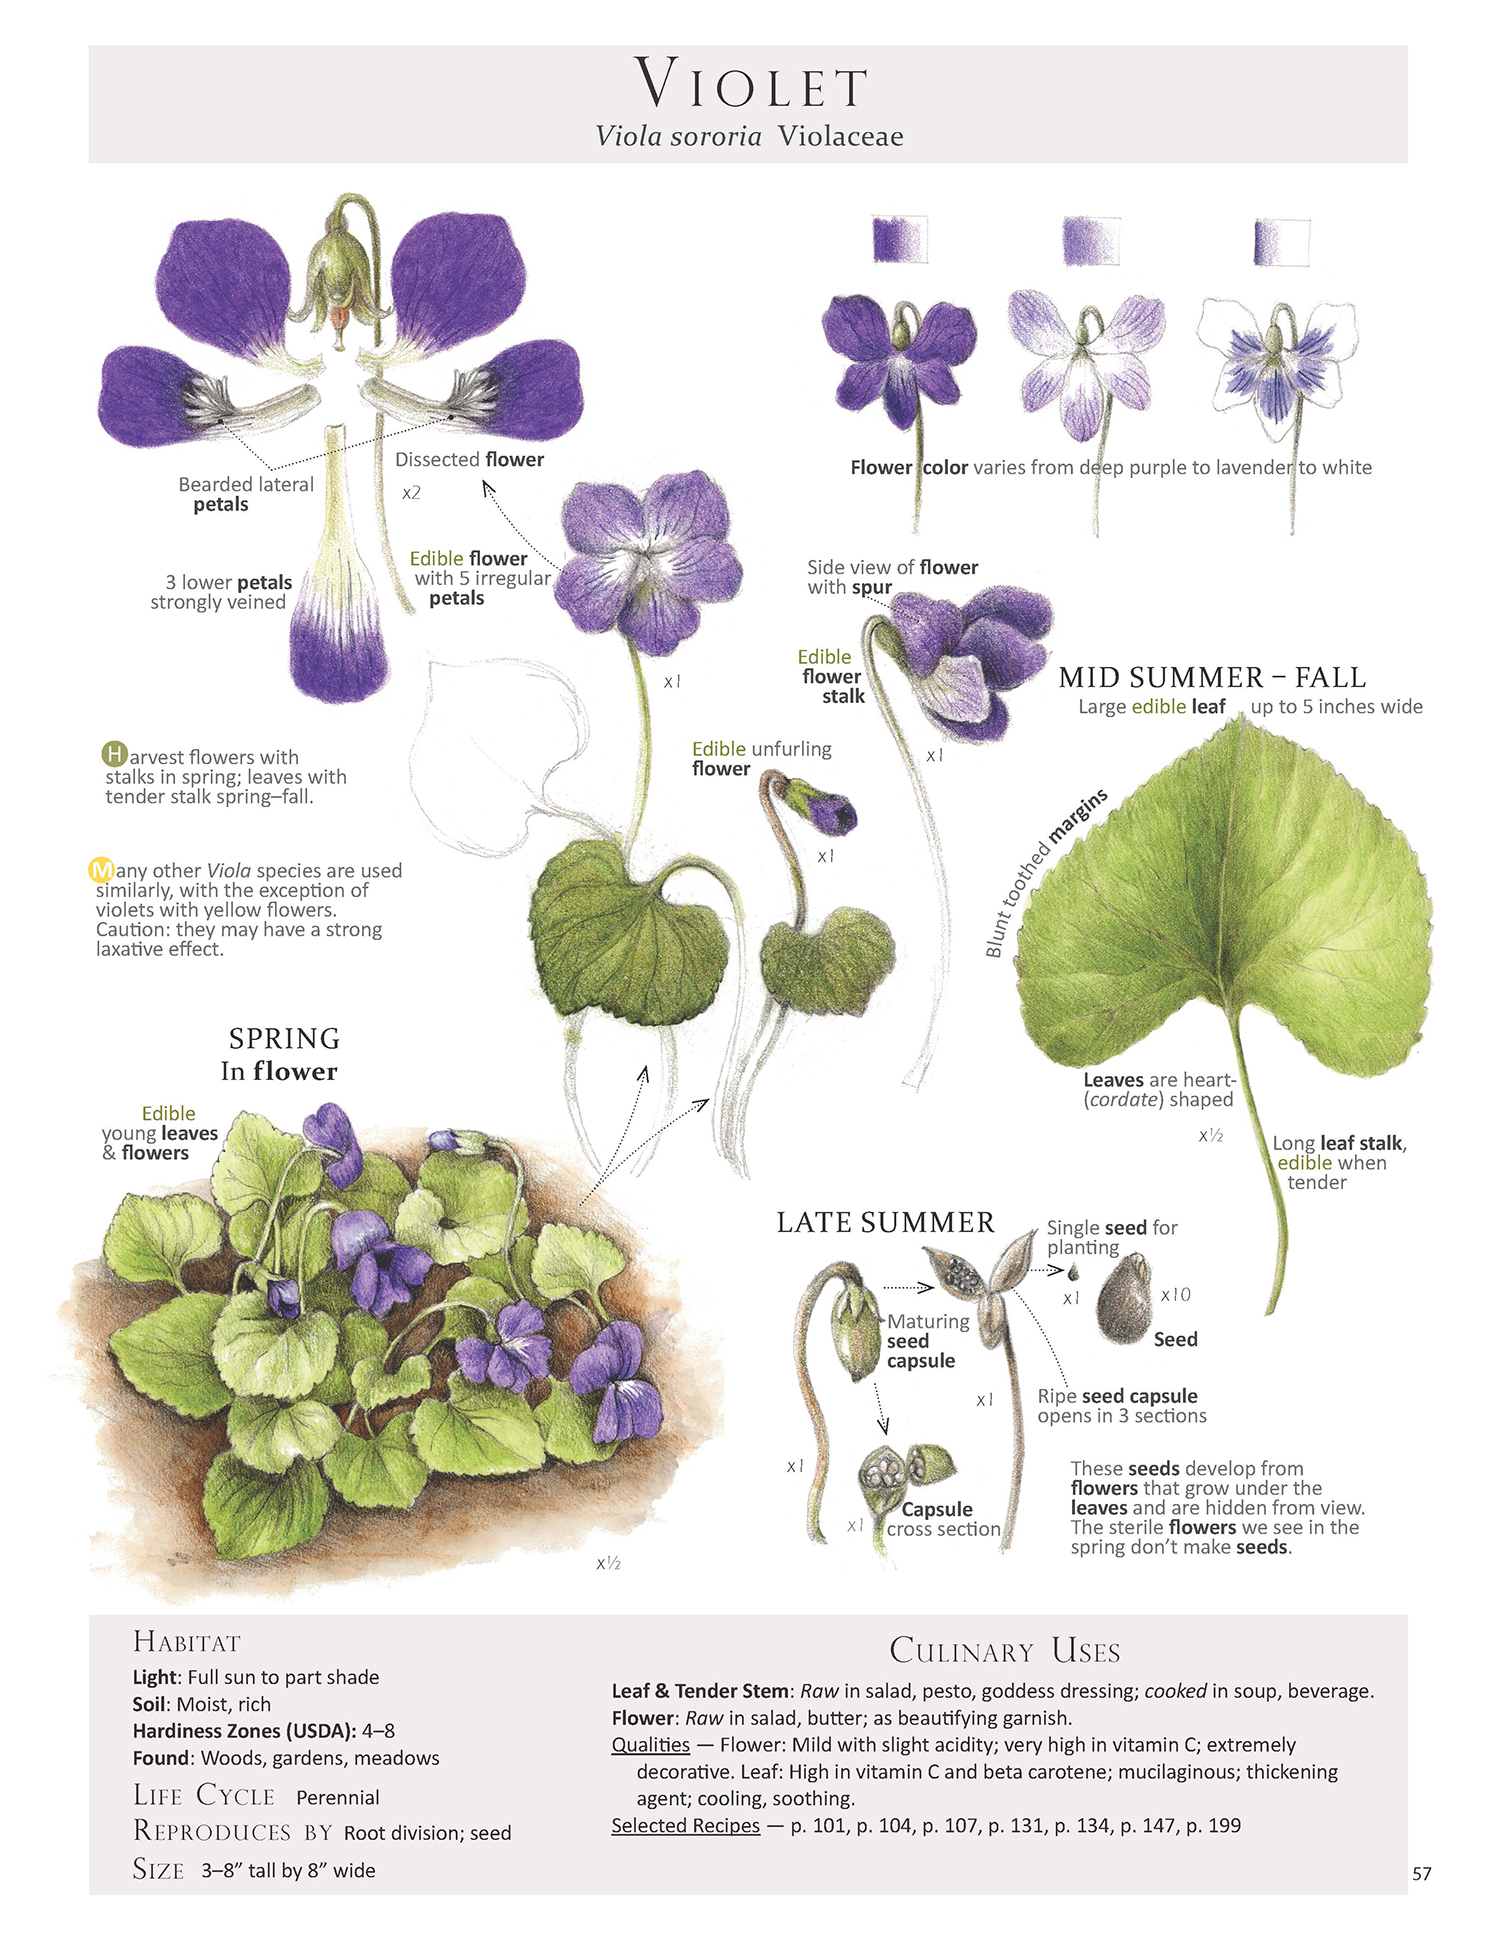 To help with id harvest and use here is the violet page, or plant map as I like to call them, from our book Foraging & Feasting: A Field Guide and Wild Food Cookbook by Dina Falconi, illustrated by Wendy Hollender. Book Link:    http://bit.ly/1Auh44Q